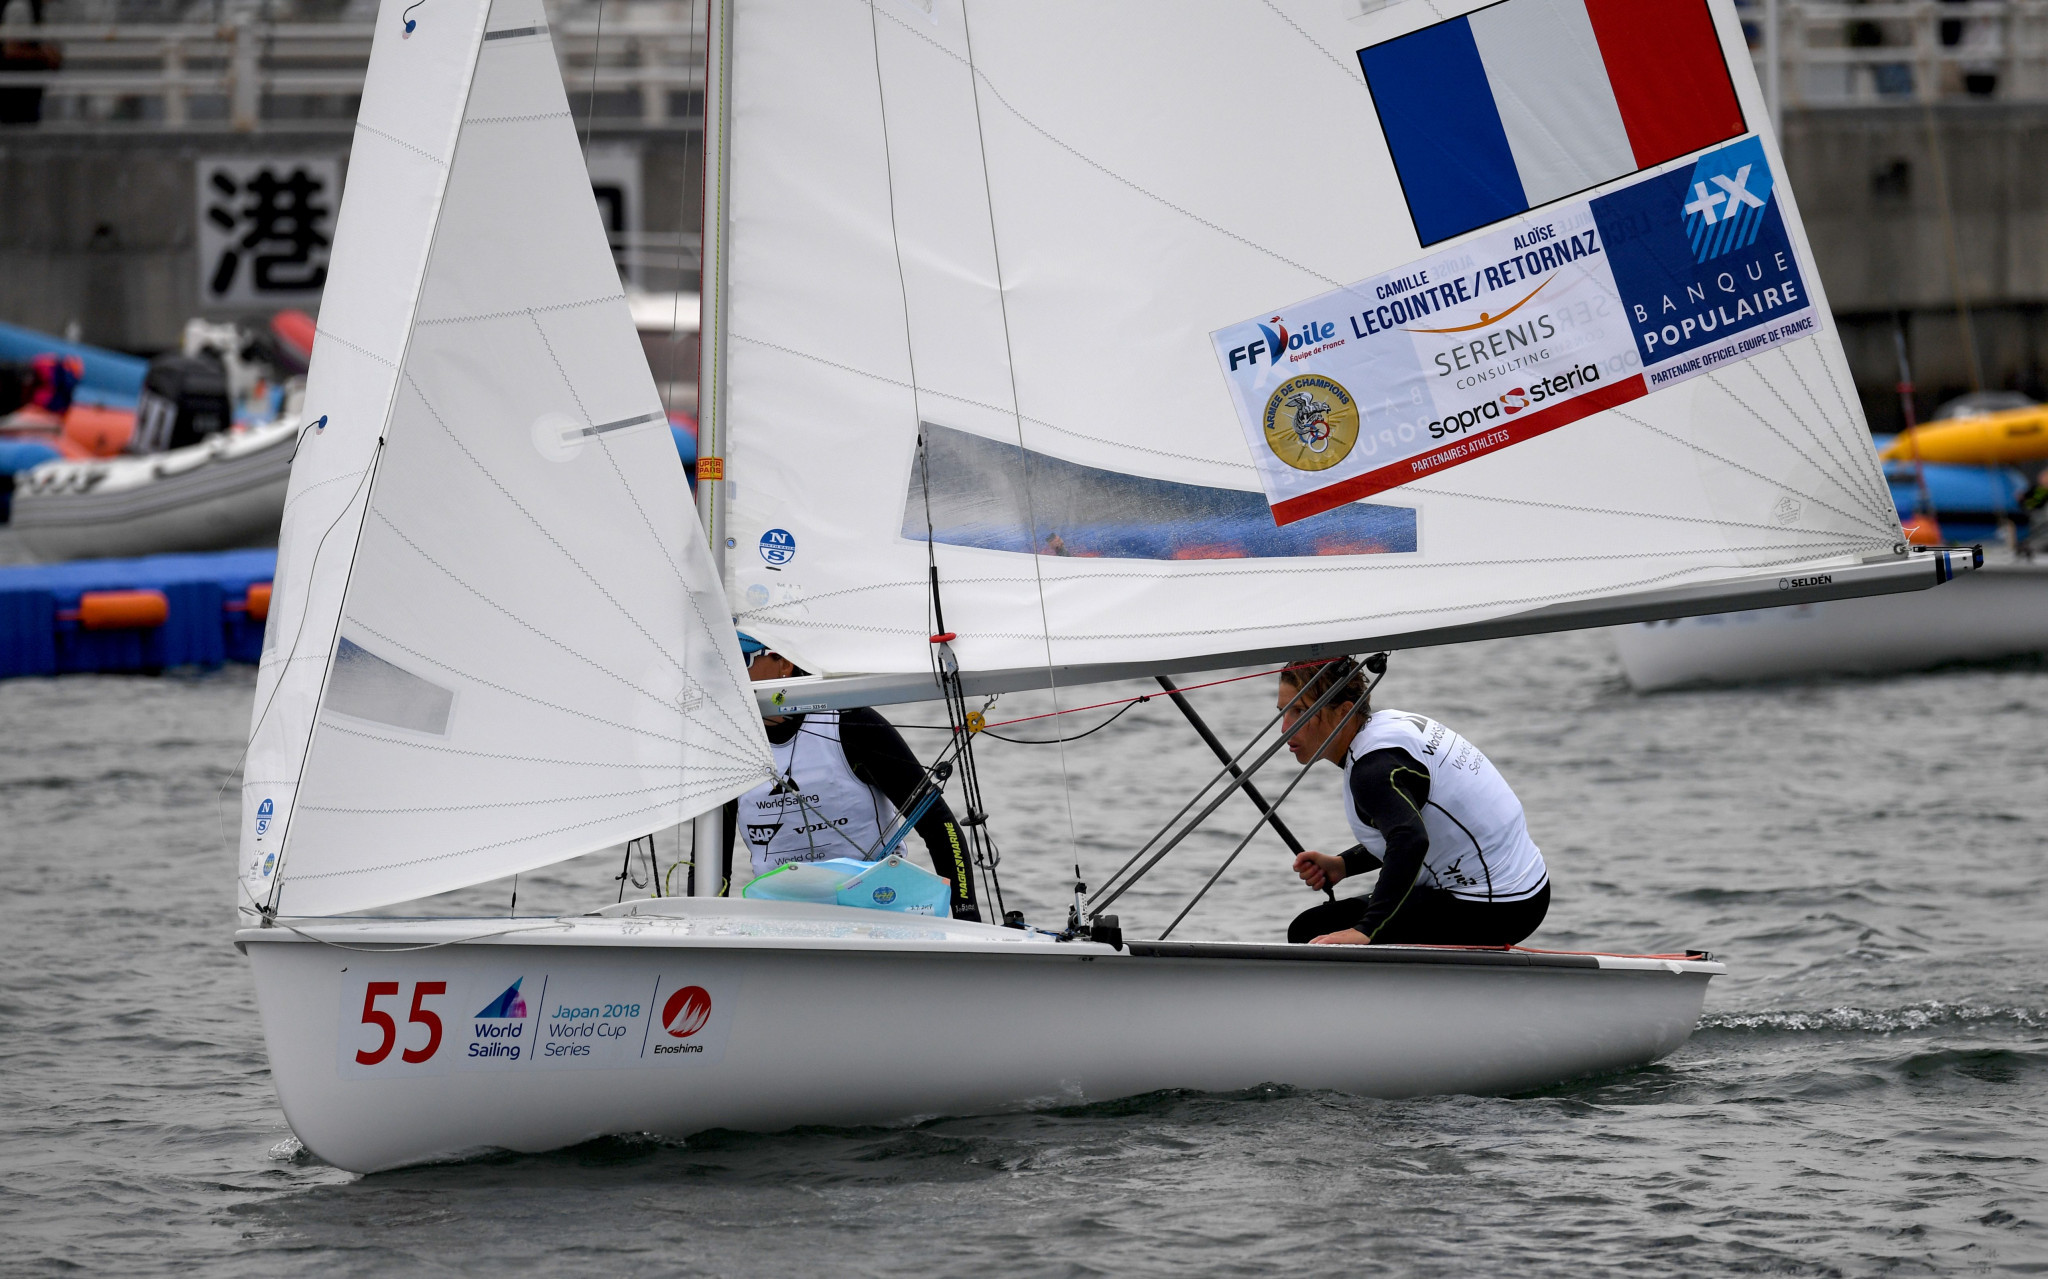 A Sailing World Cup series event officially marked the start of Tokyo 2020's test event schedule ©Getty Images